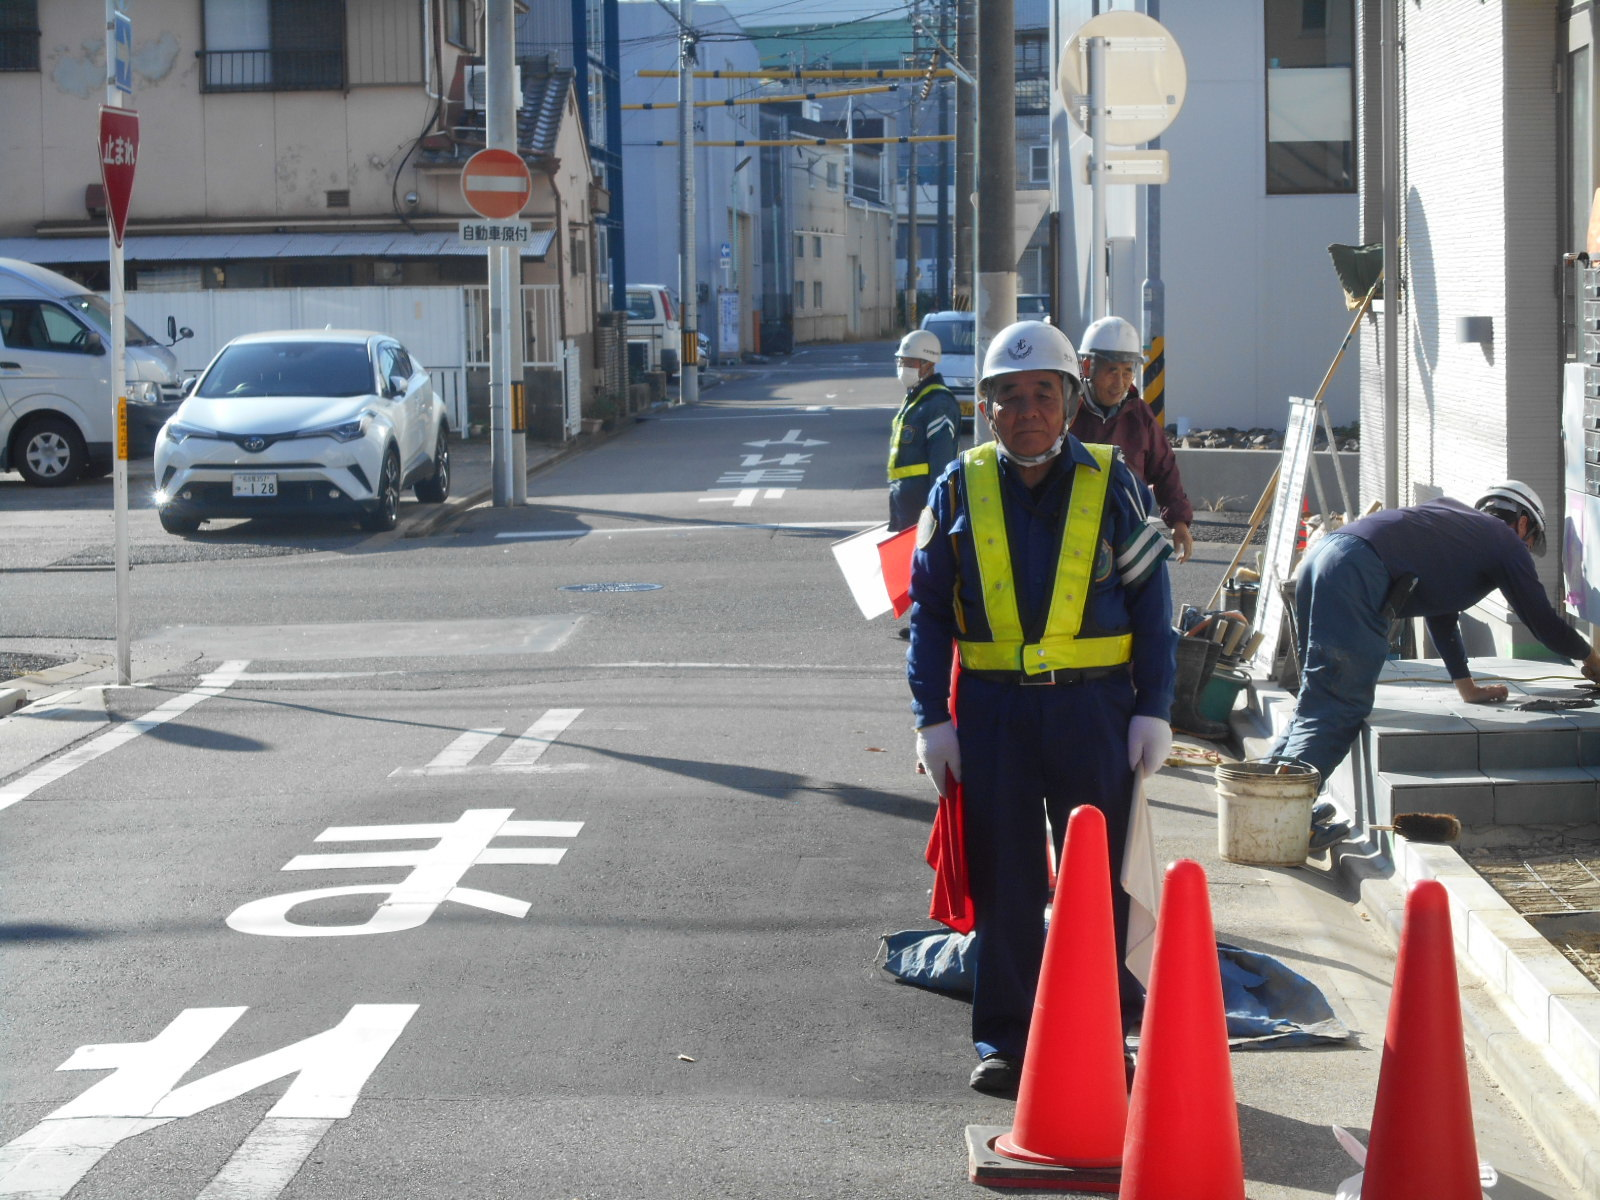 【Aichi】Support your dreams! Monthly income of 300,000 or more is possible. A guard man who protects the safety of citizens